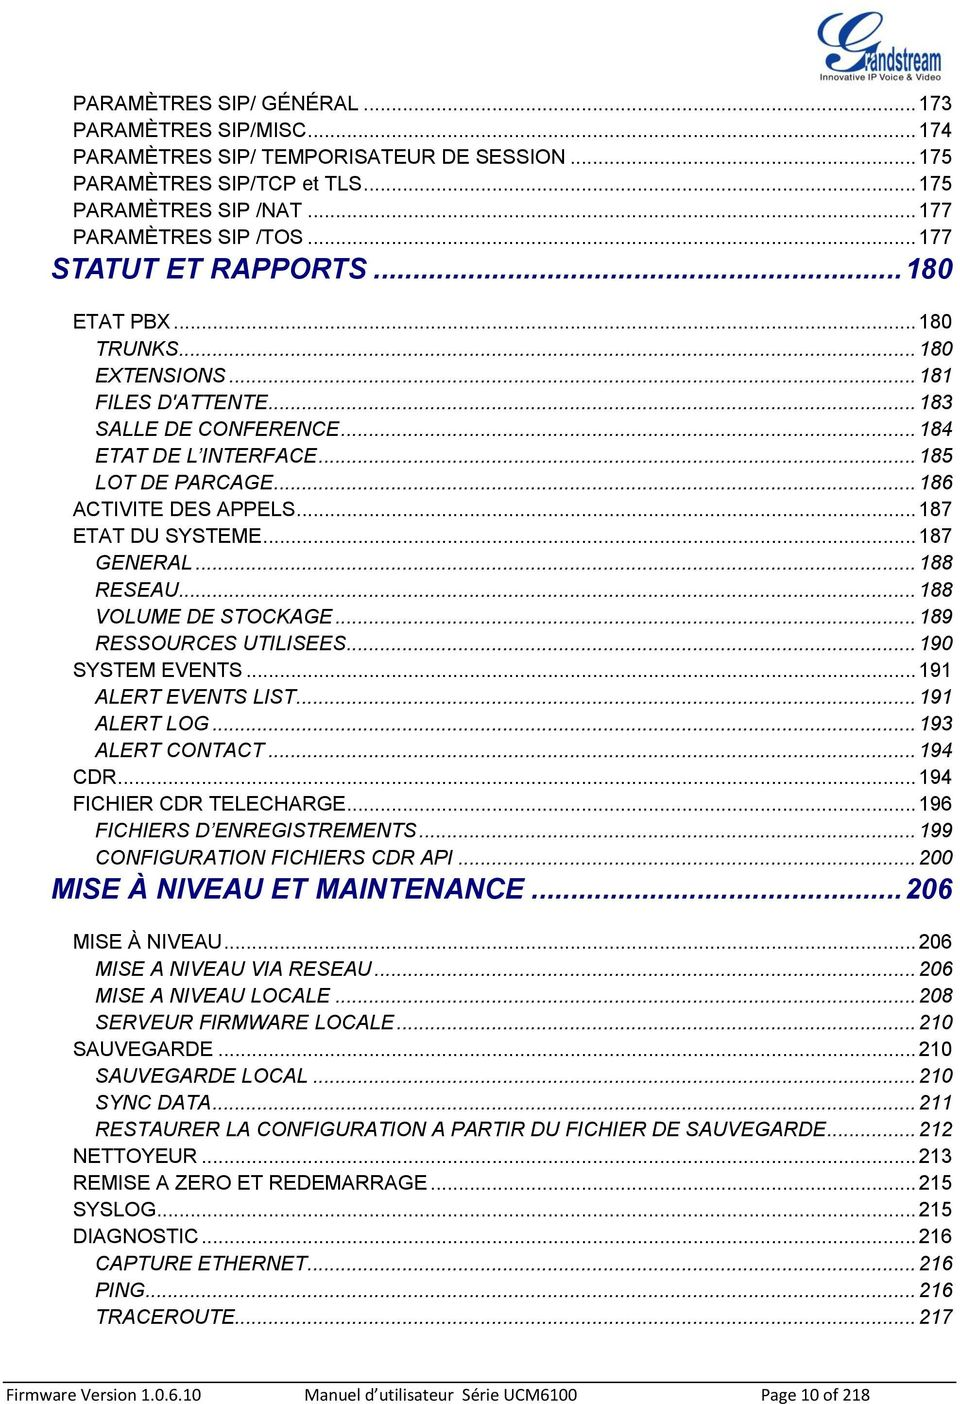 .. 187 ETAT DU SYSTEME... 187 GENERAL... 188 RESEAU... 188 VOLUME DE STOCKAGE... 189 RESSOURCES UTILISEES... 190 SYSTEM EVENTS... 191 ALERT EVENTS LIST... 191 ALERT LOG... 193 ALERT CONTACT... 194 CDR.